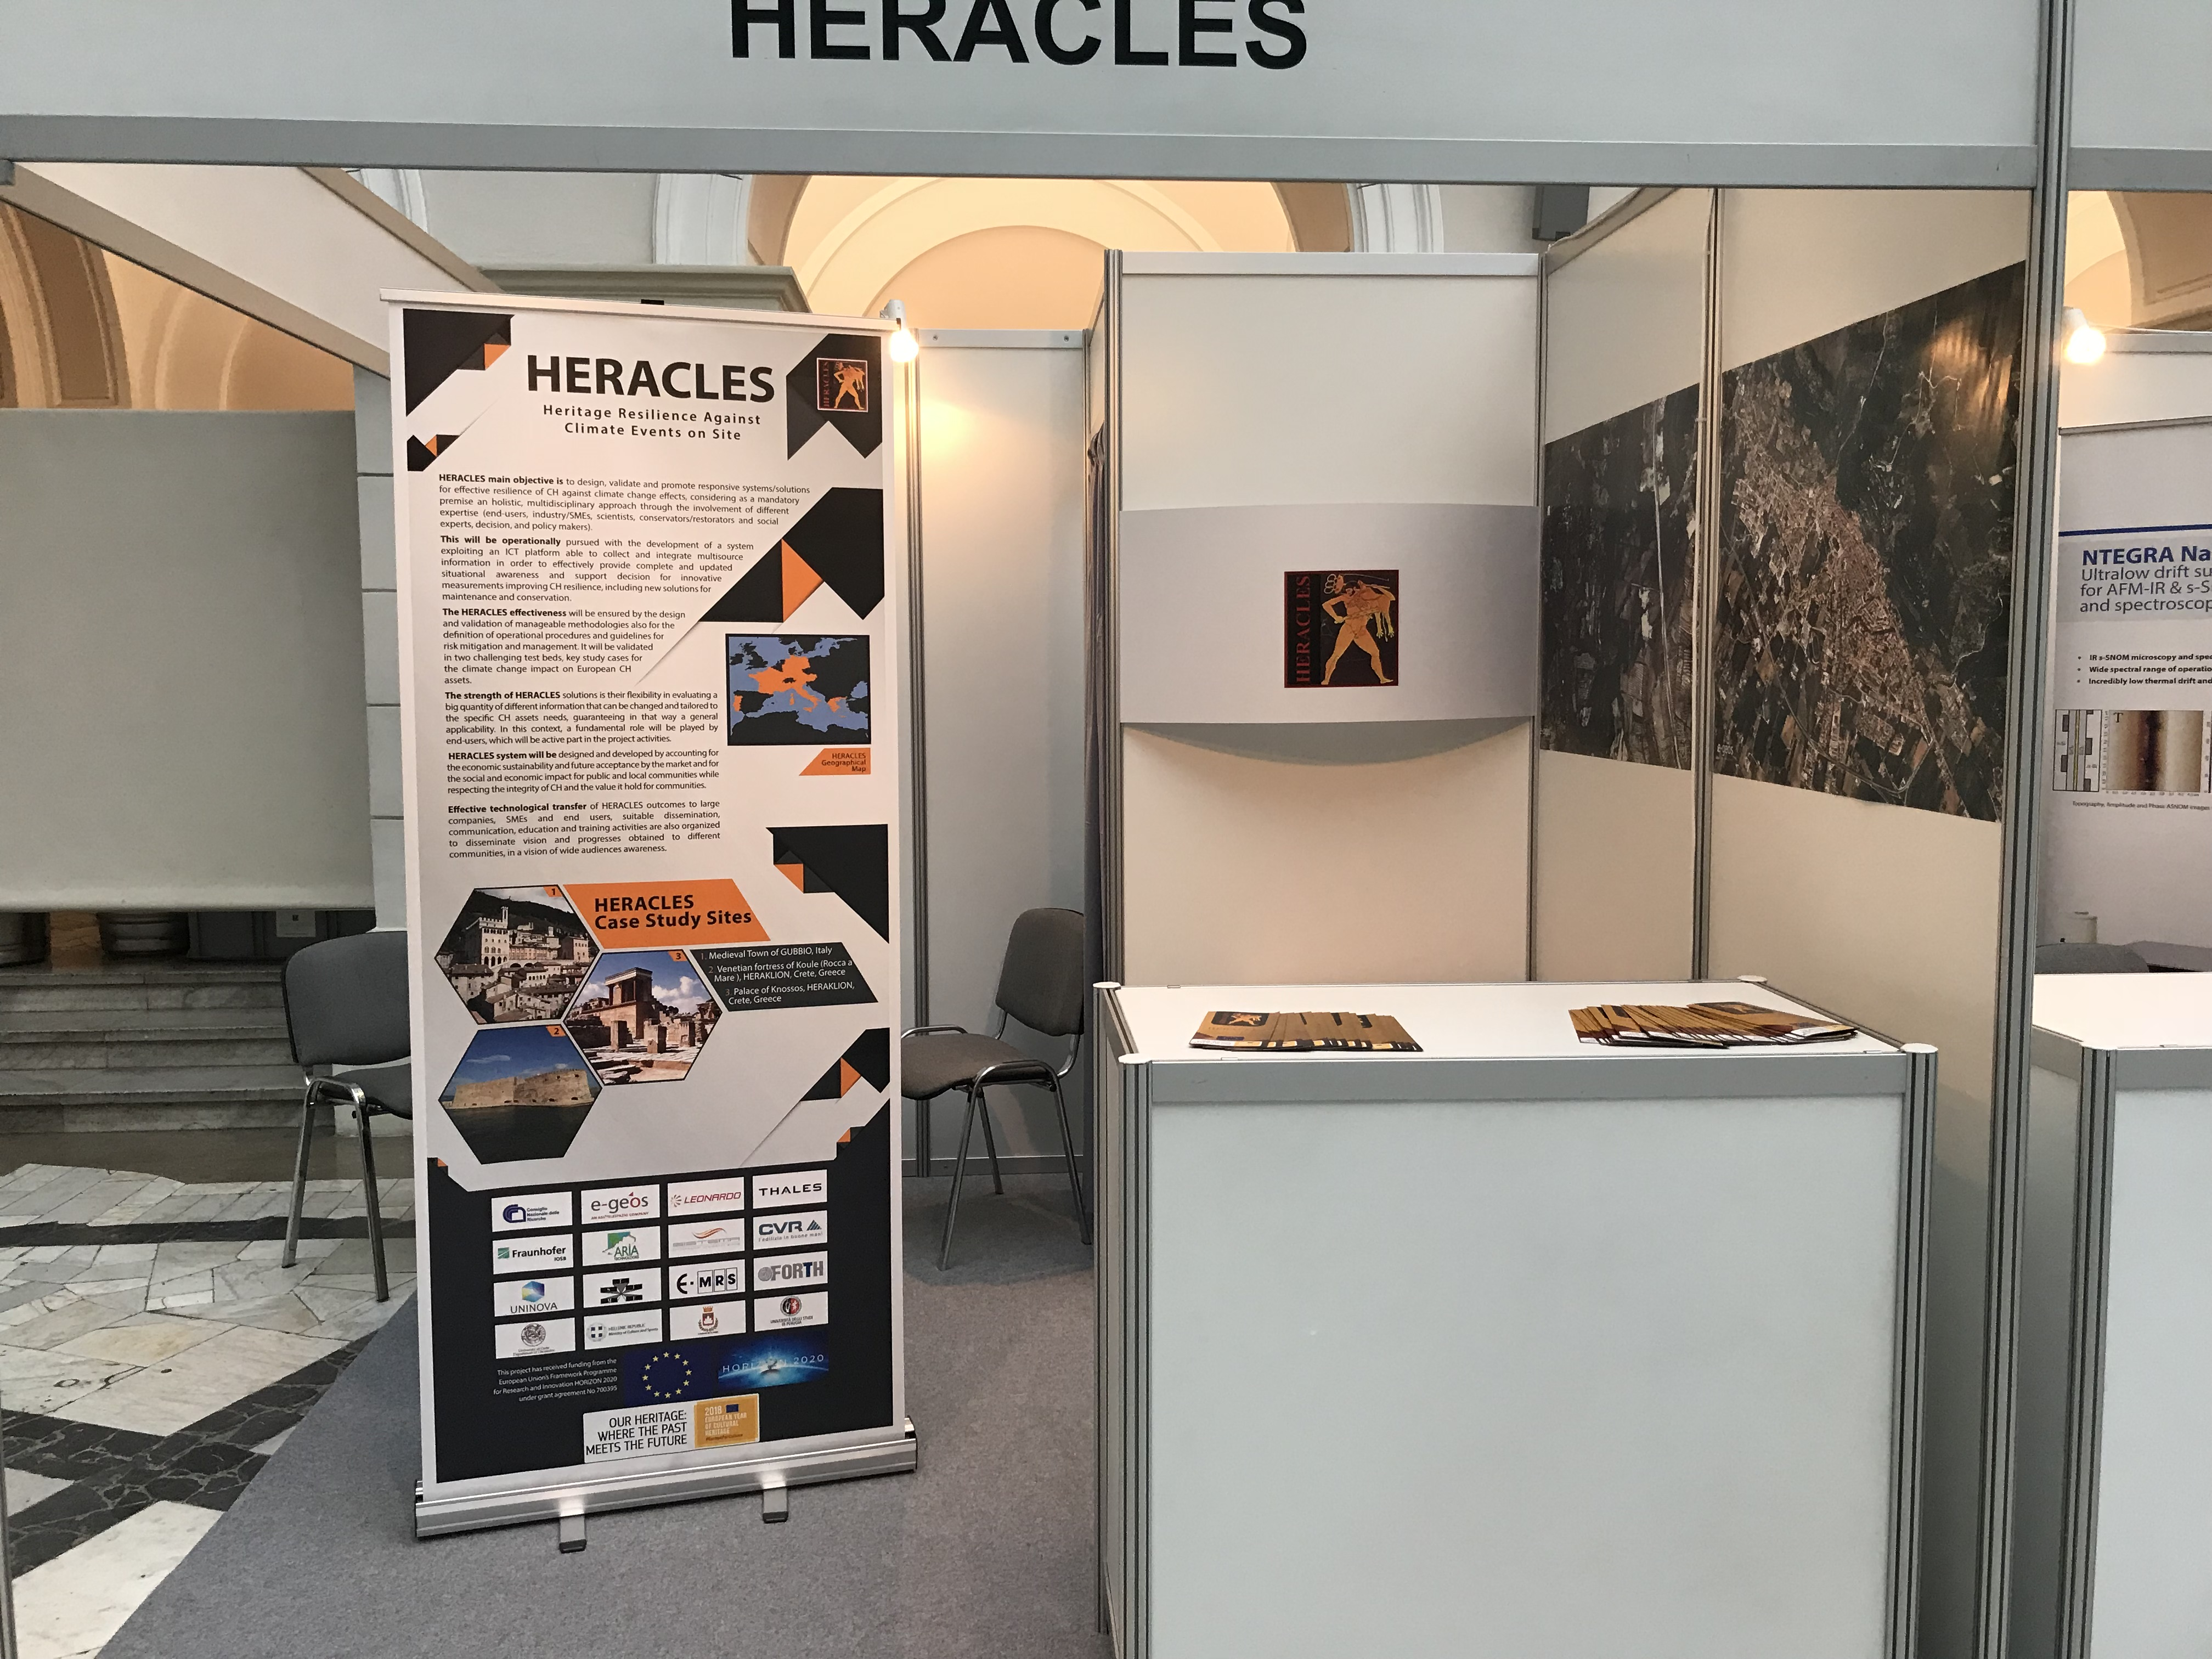 HERACLES held a stand in the EMRS 2018 Fall Meeting